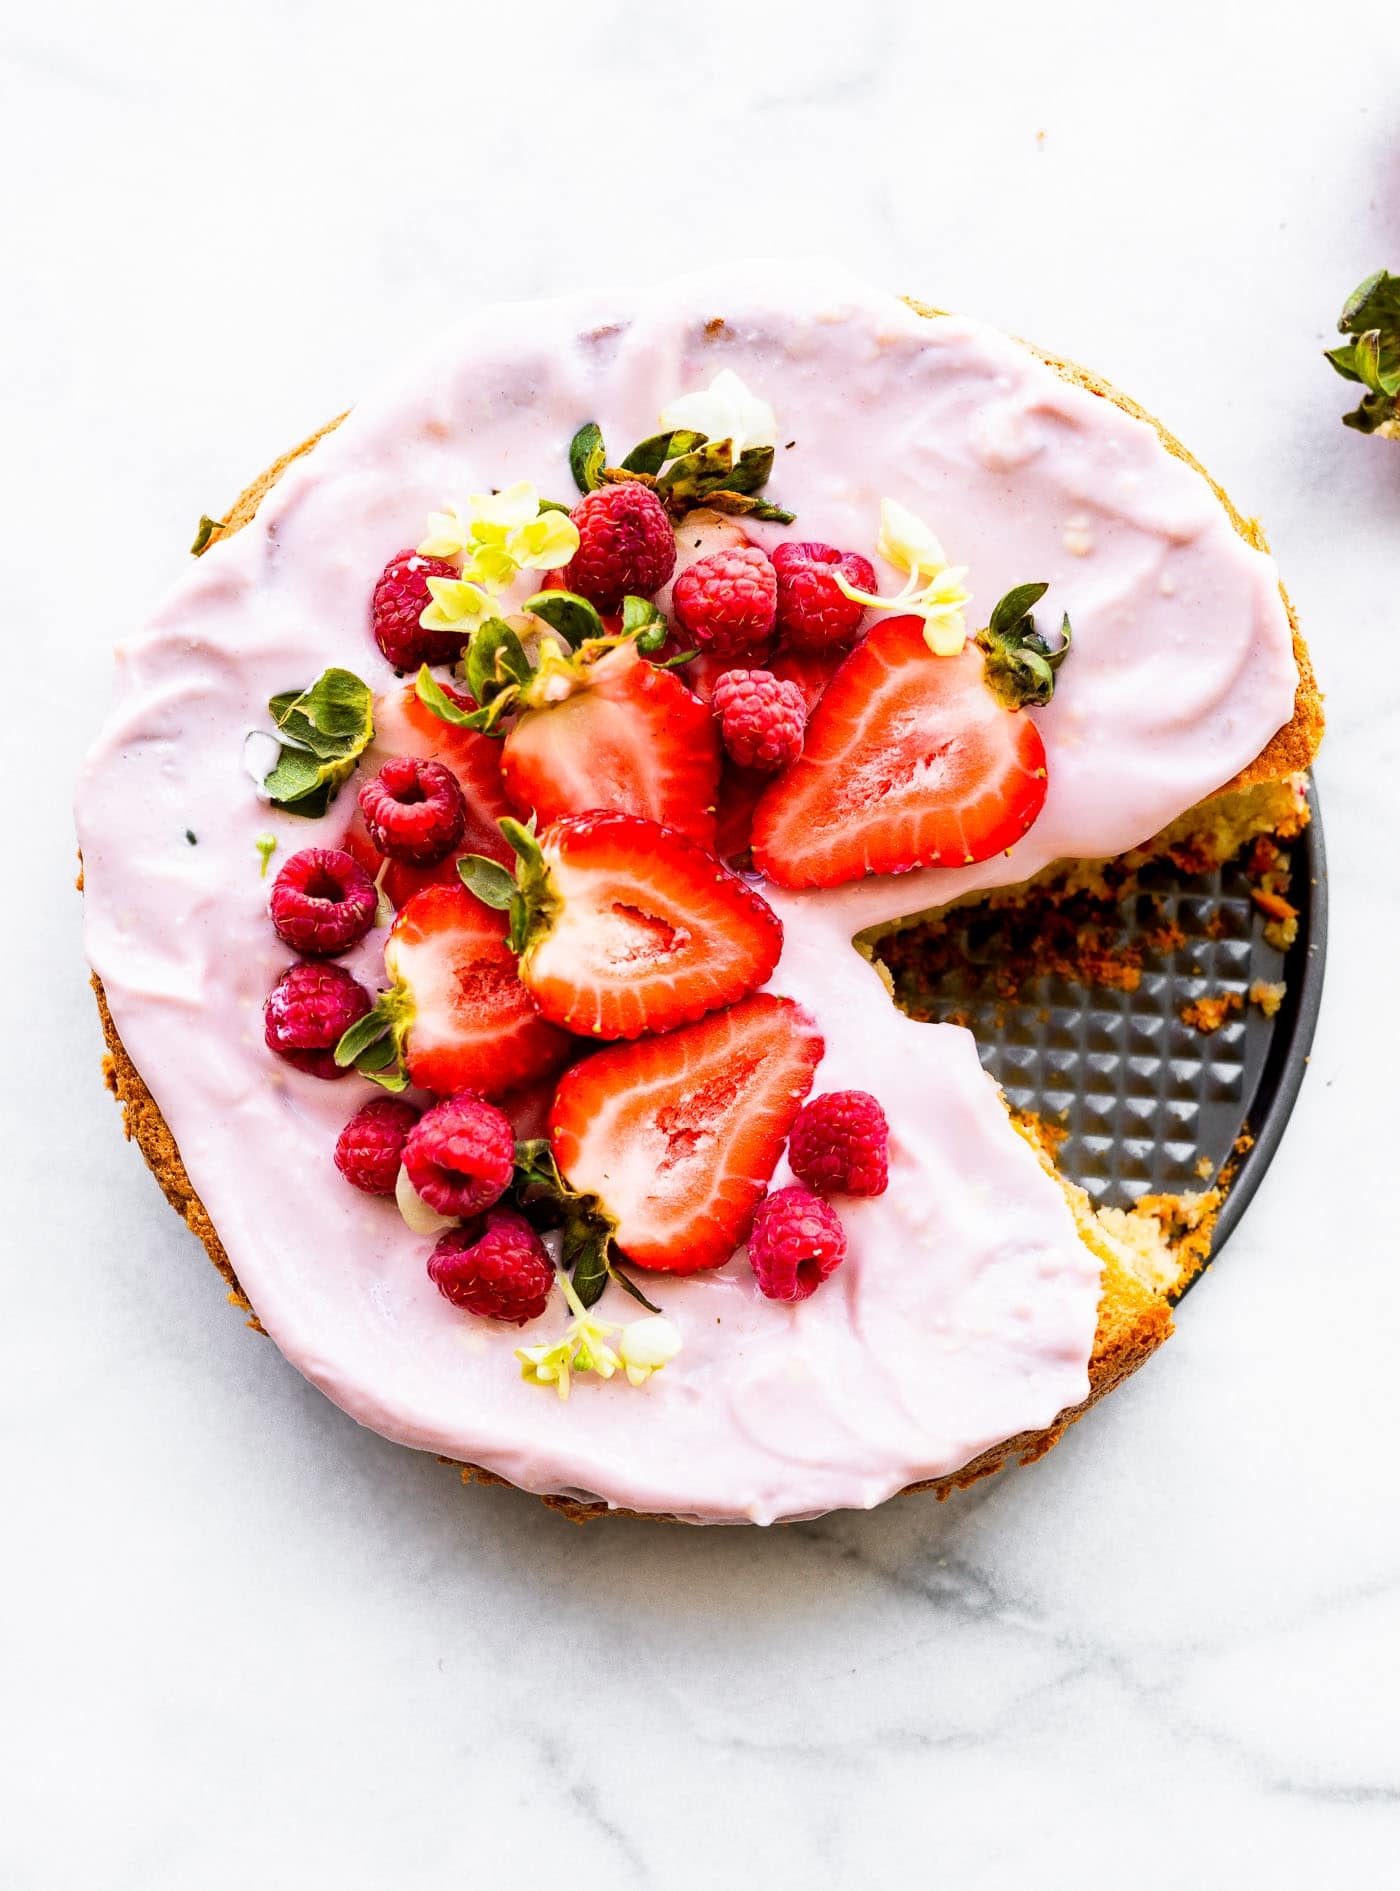 Overhead image of flourless almond cake dressed with yogurt frosting, fresh berries, and edible flowers.